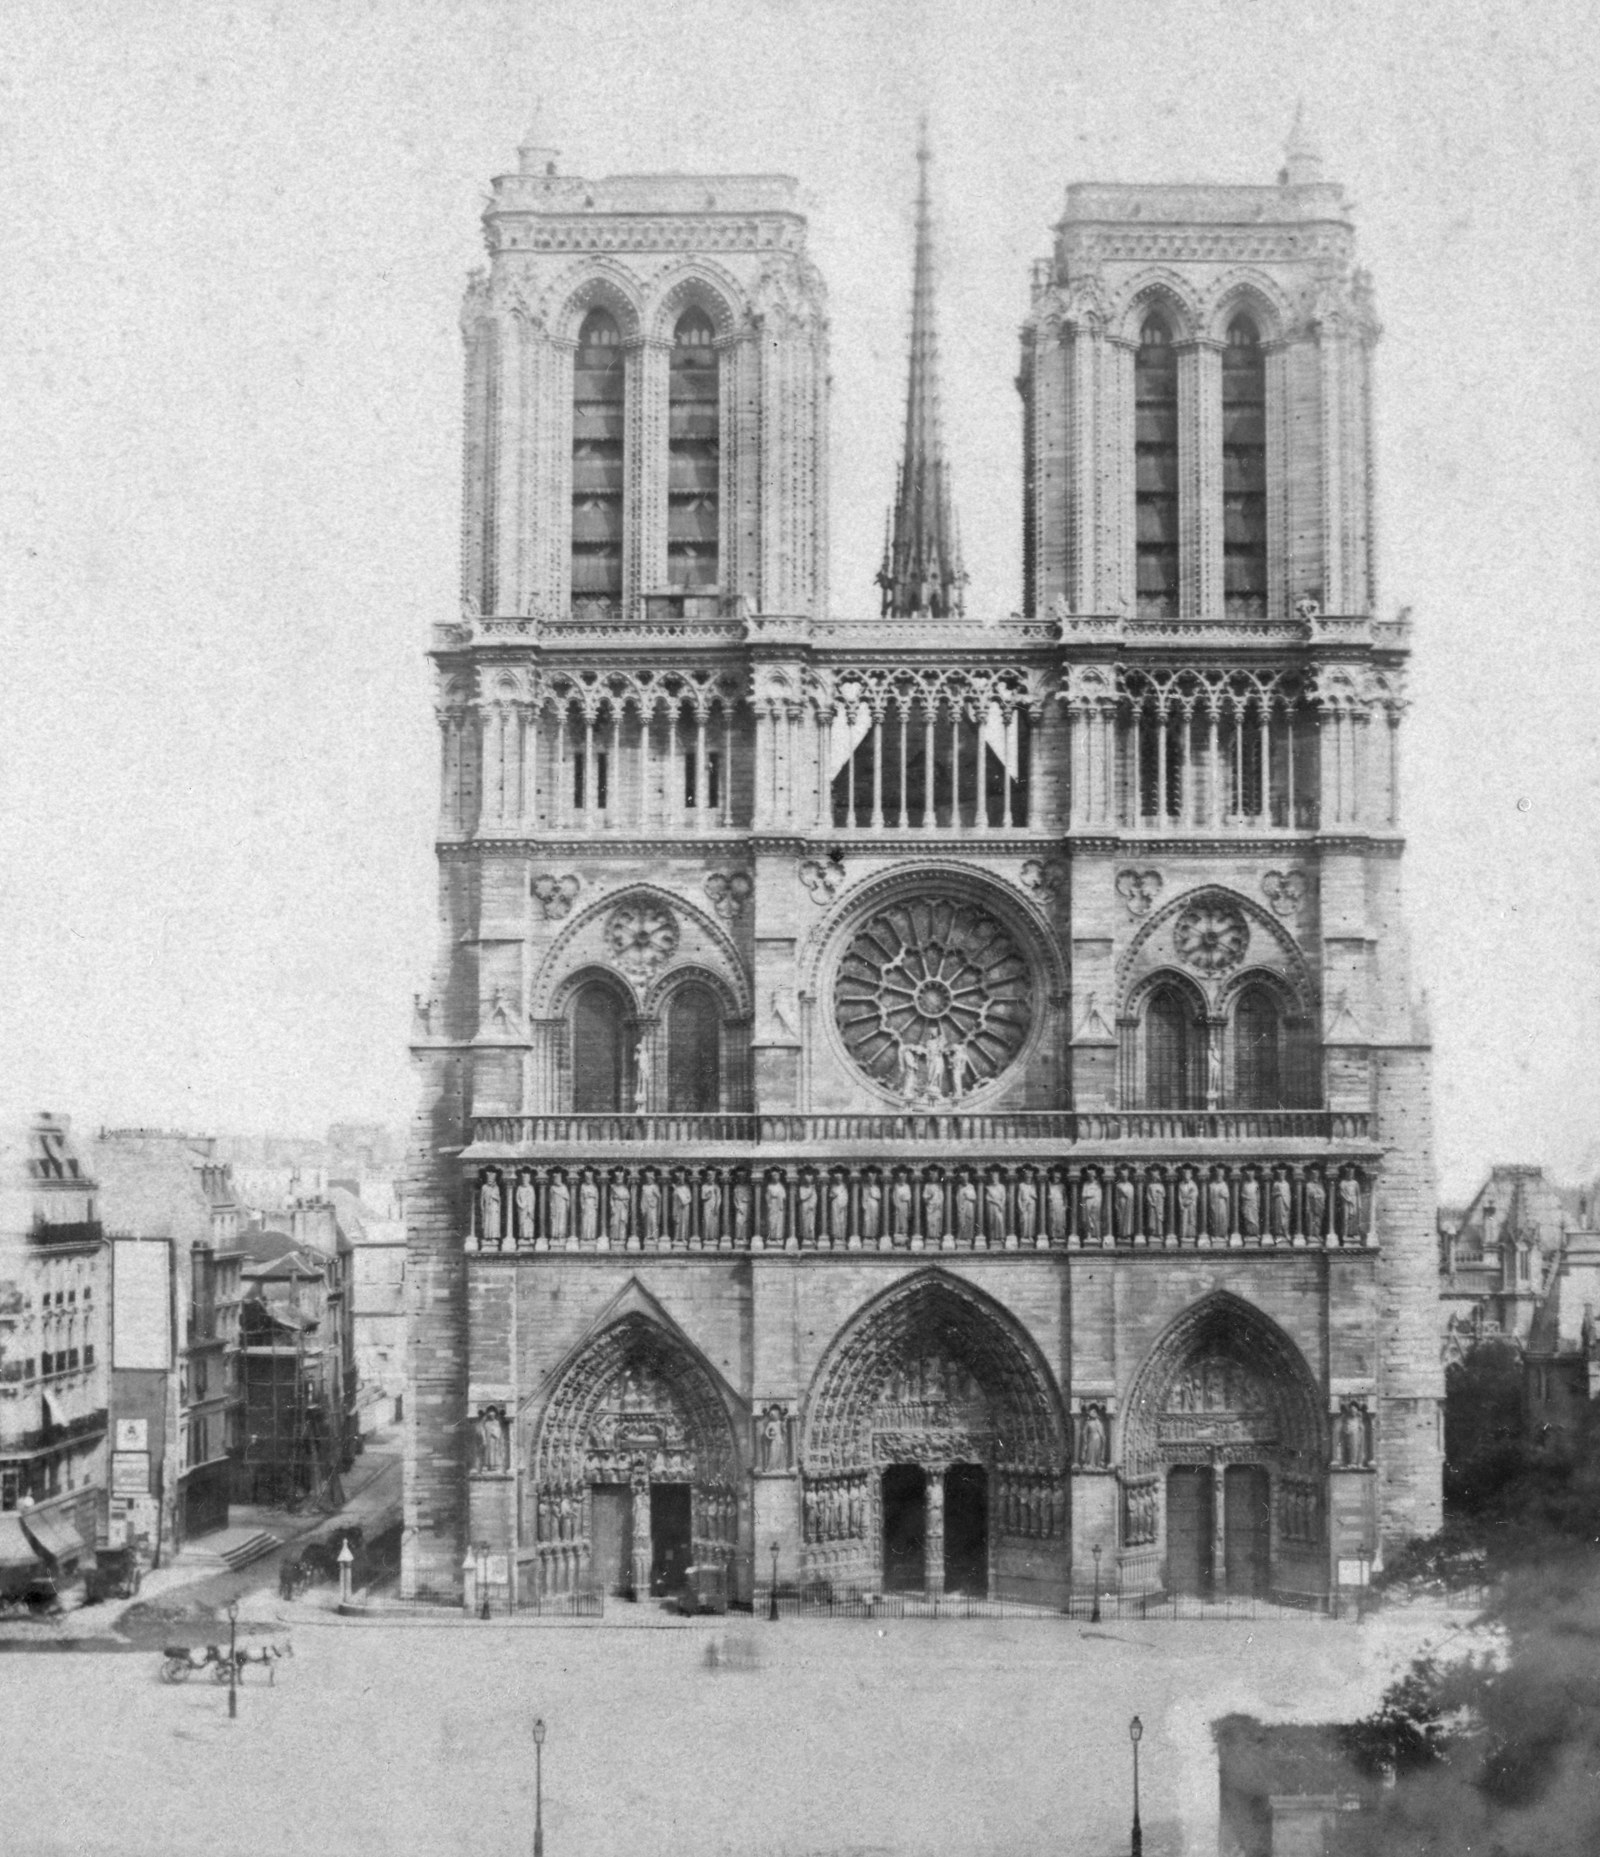 Notre Dame Cathedral photographed in the late 19th or early 20th century.